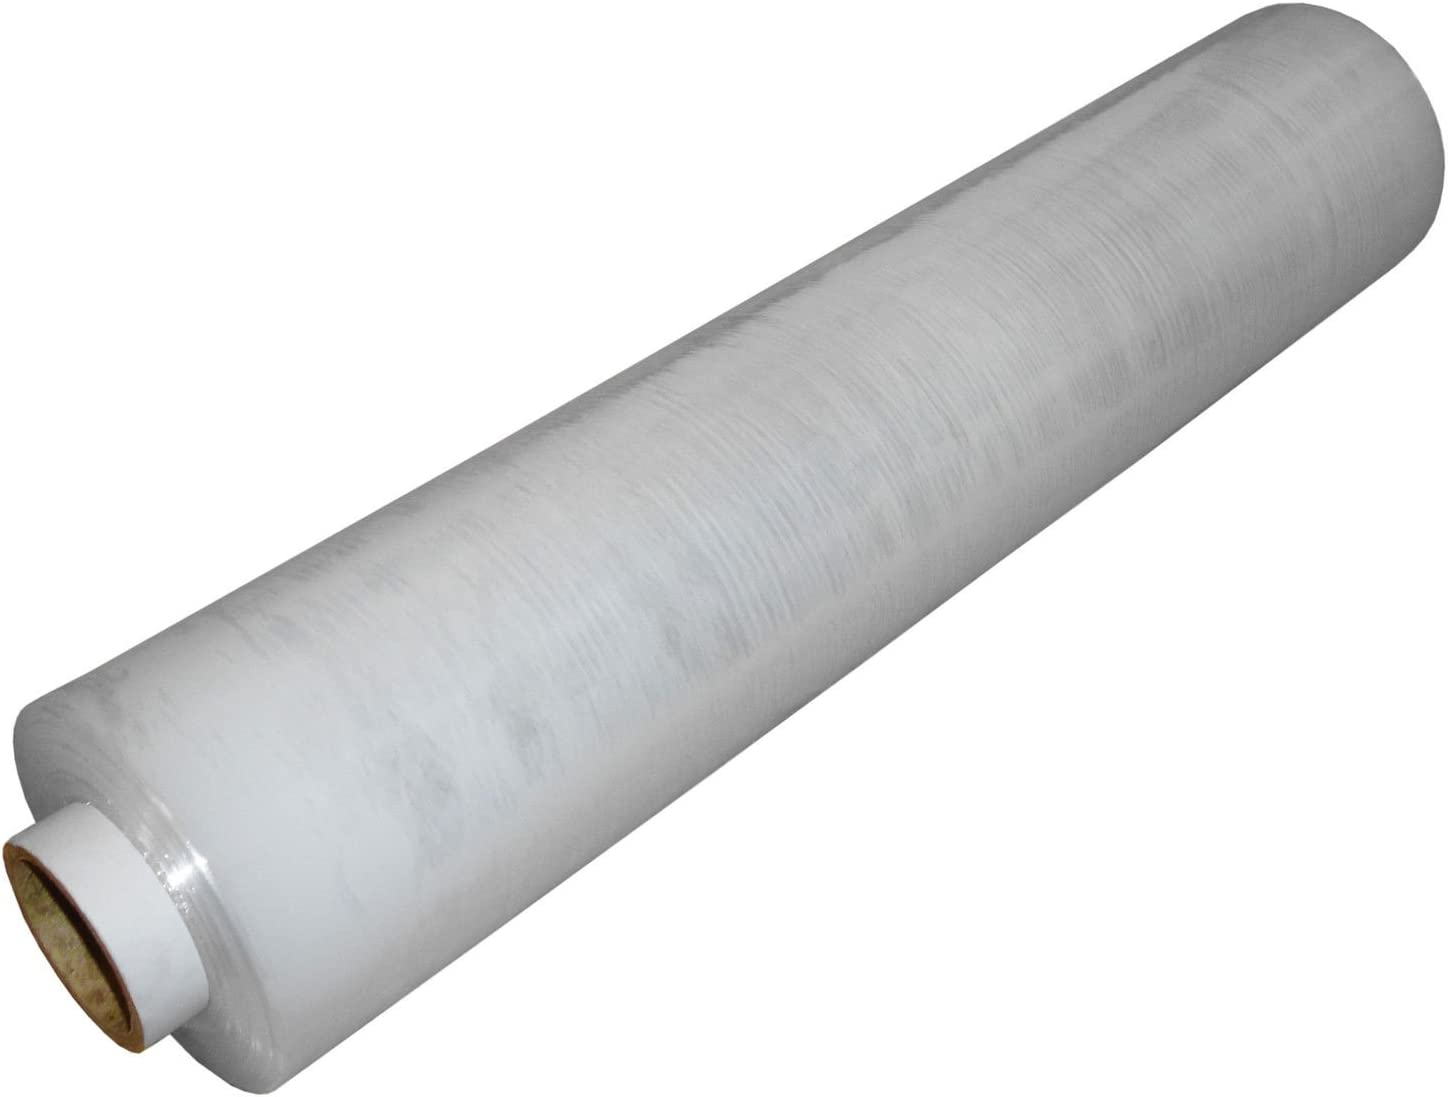 HEAVY DUTY CLEAR PALLET WRAP SHRINK WRAP CAST STRETCH FILM 500MM x 300M 23MU